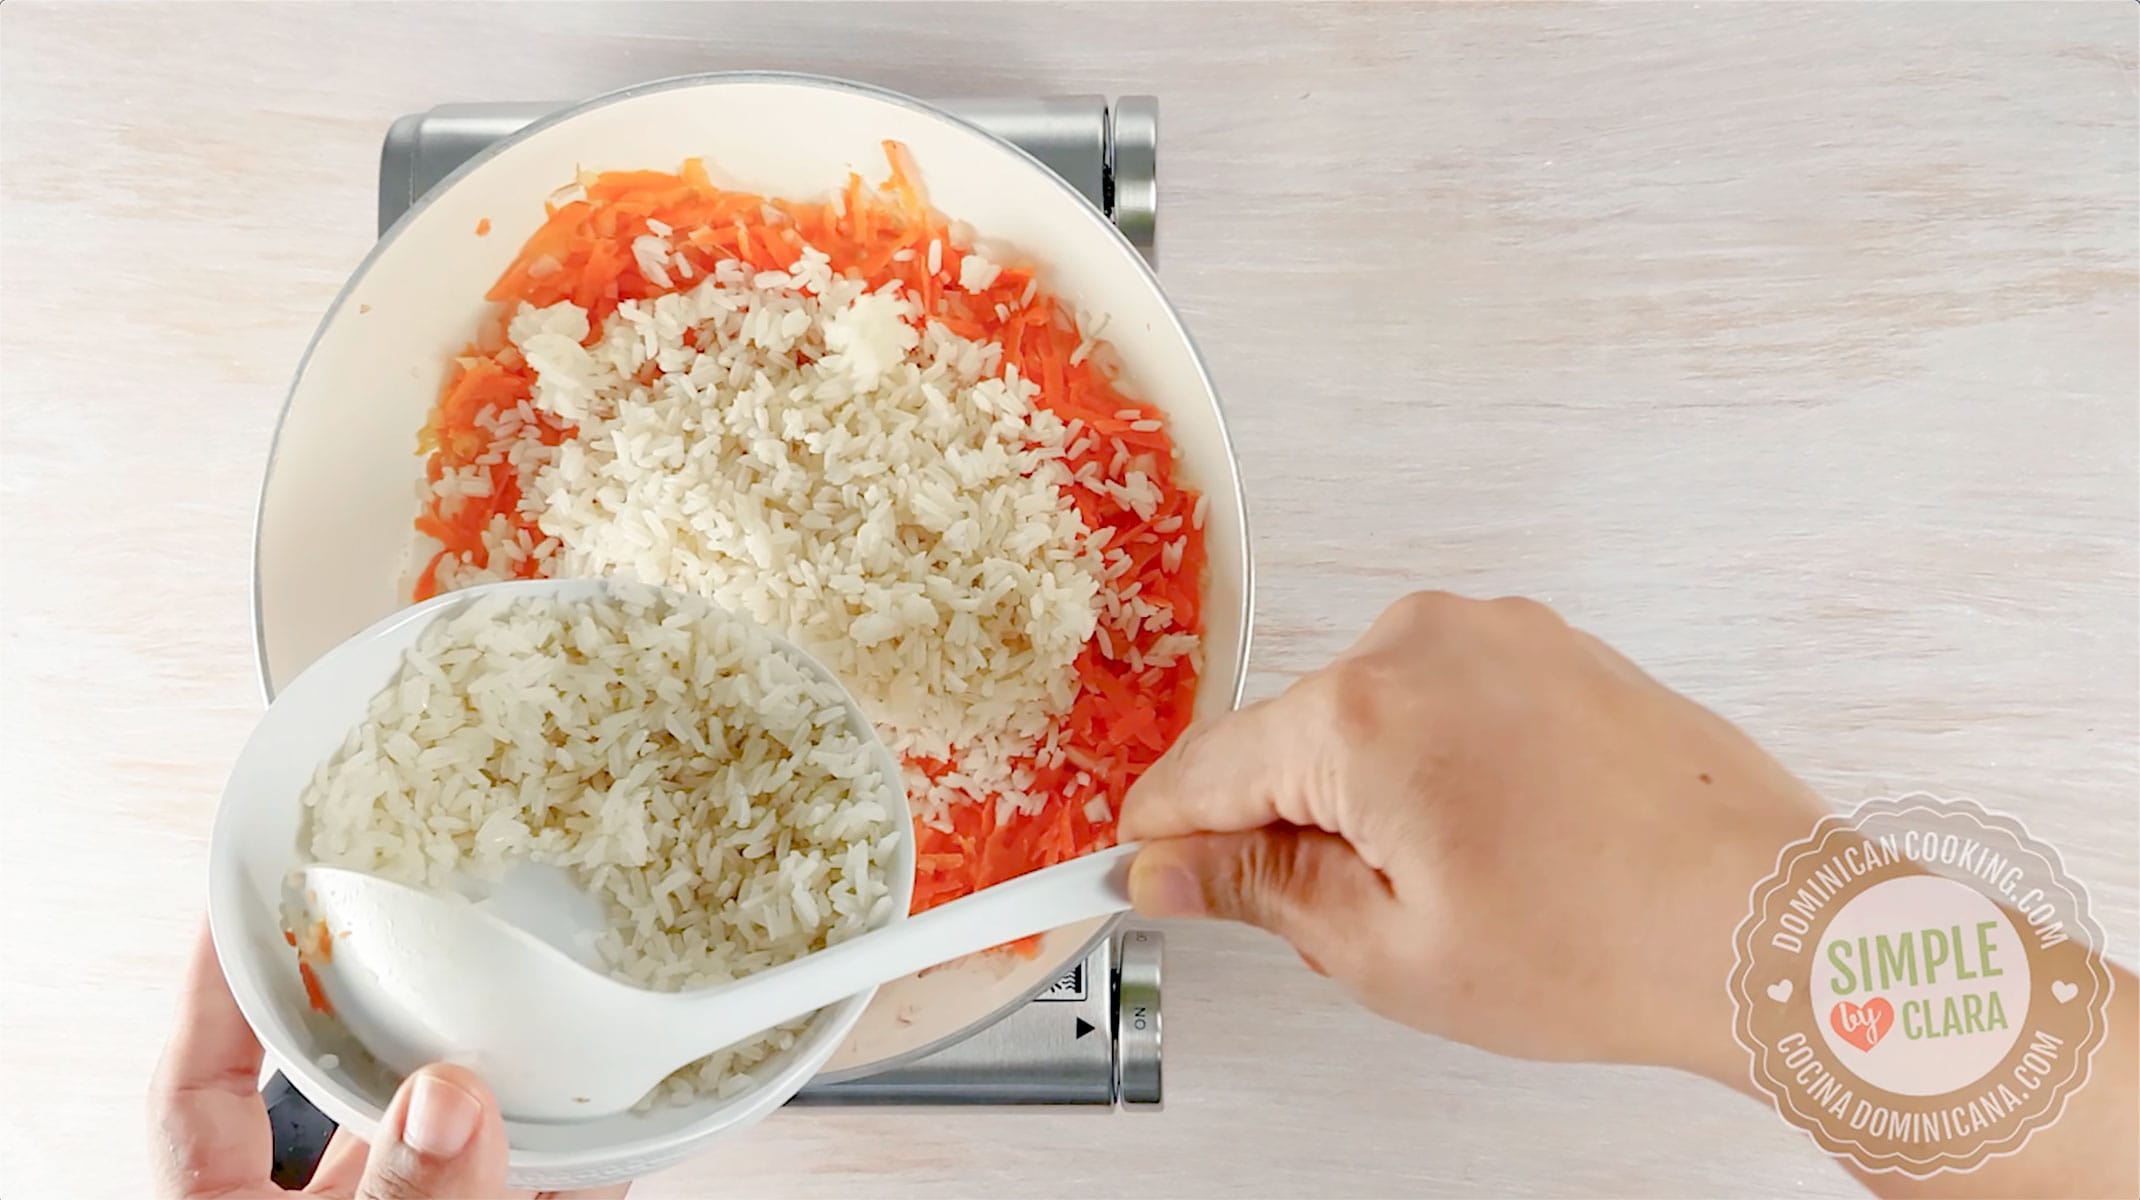 Adding rice to skillet with carrot